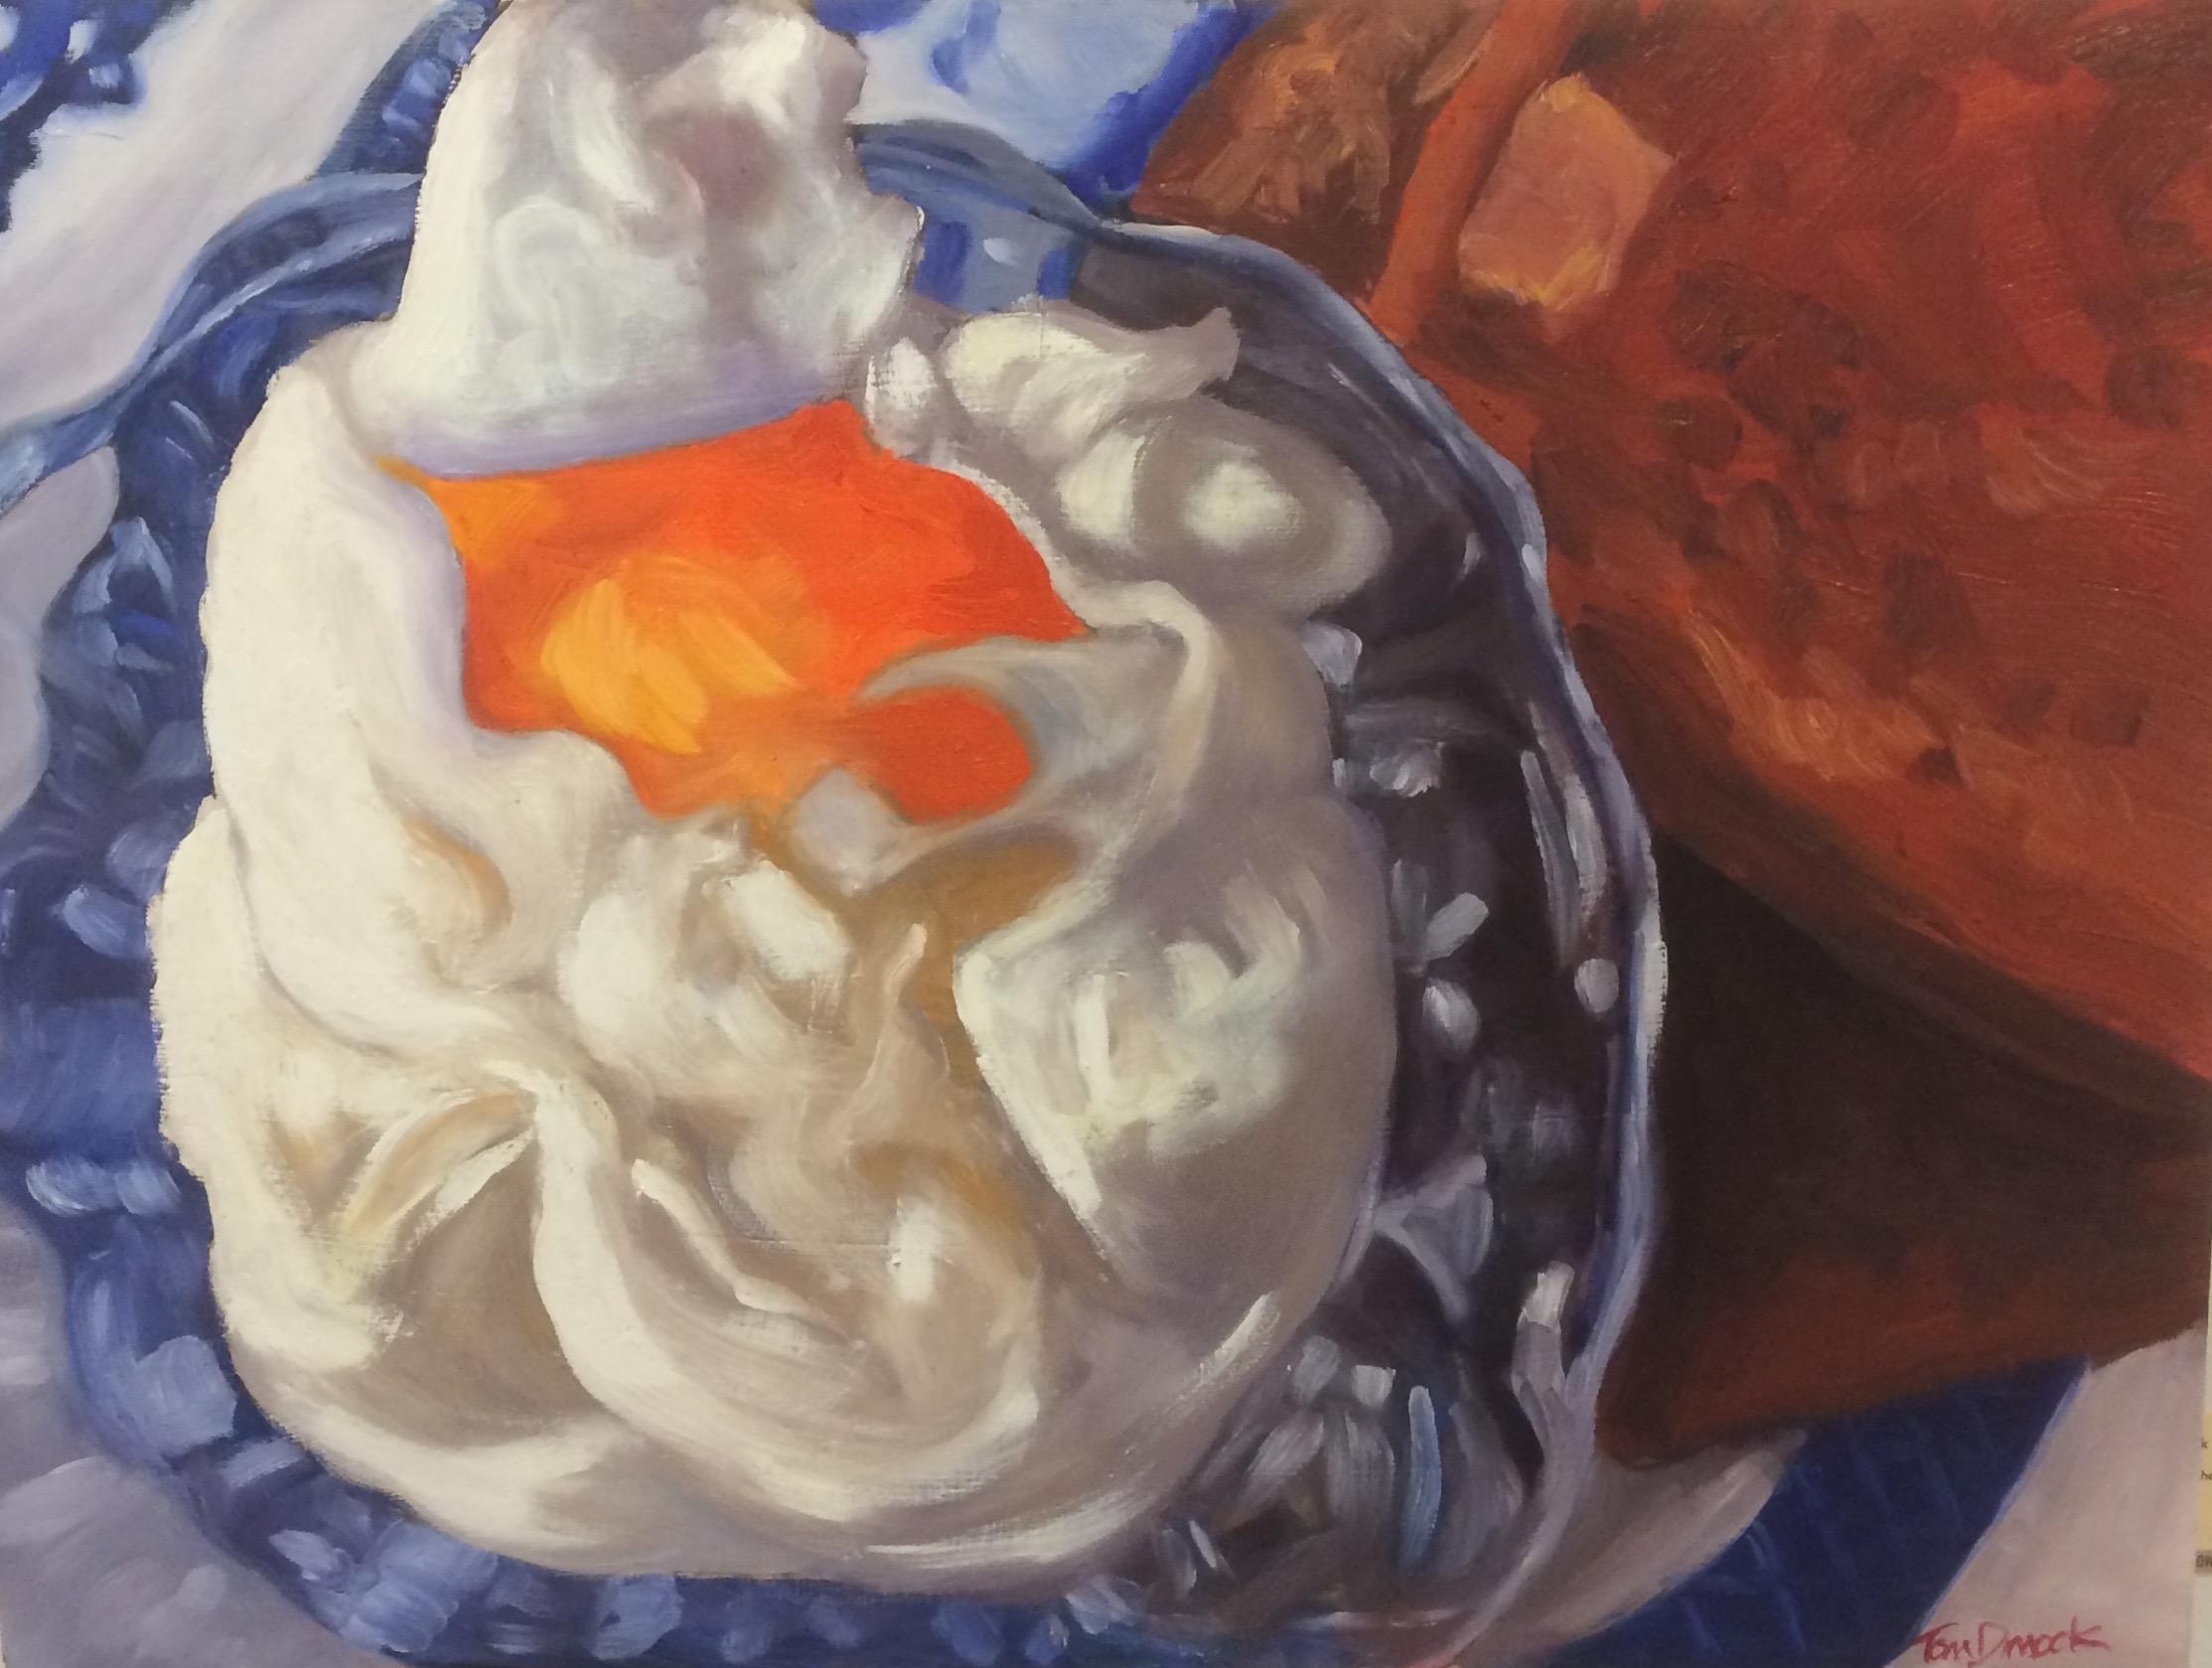 """Ode to Poached Eggs"" by Tom Dimock."